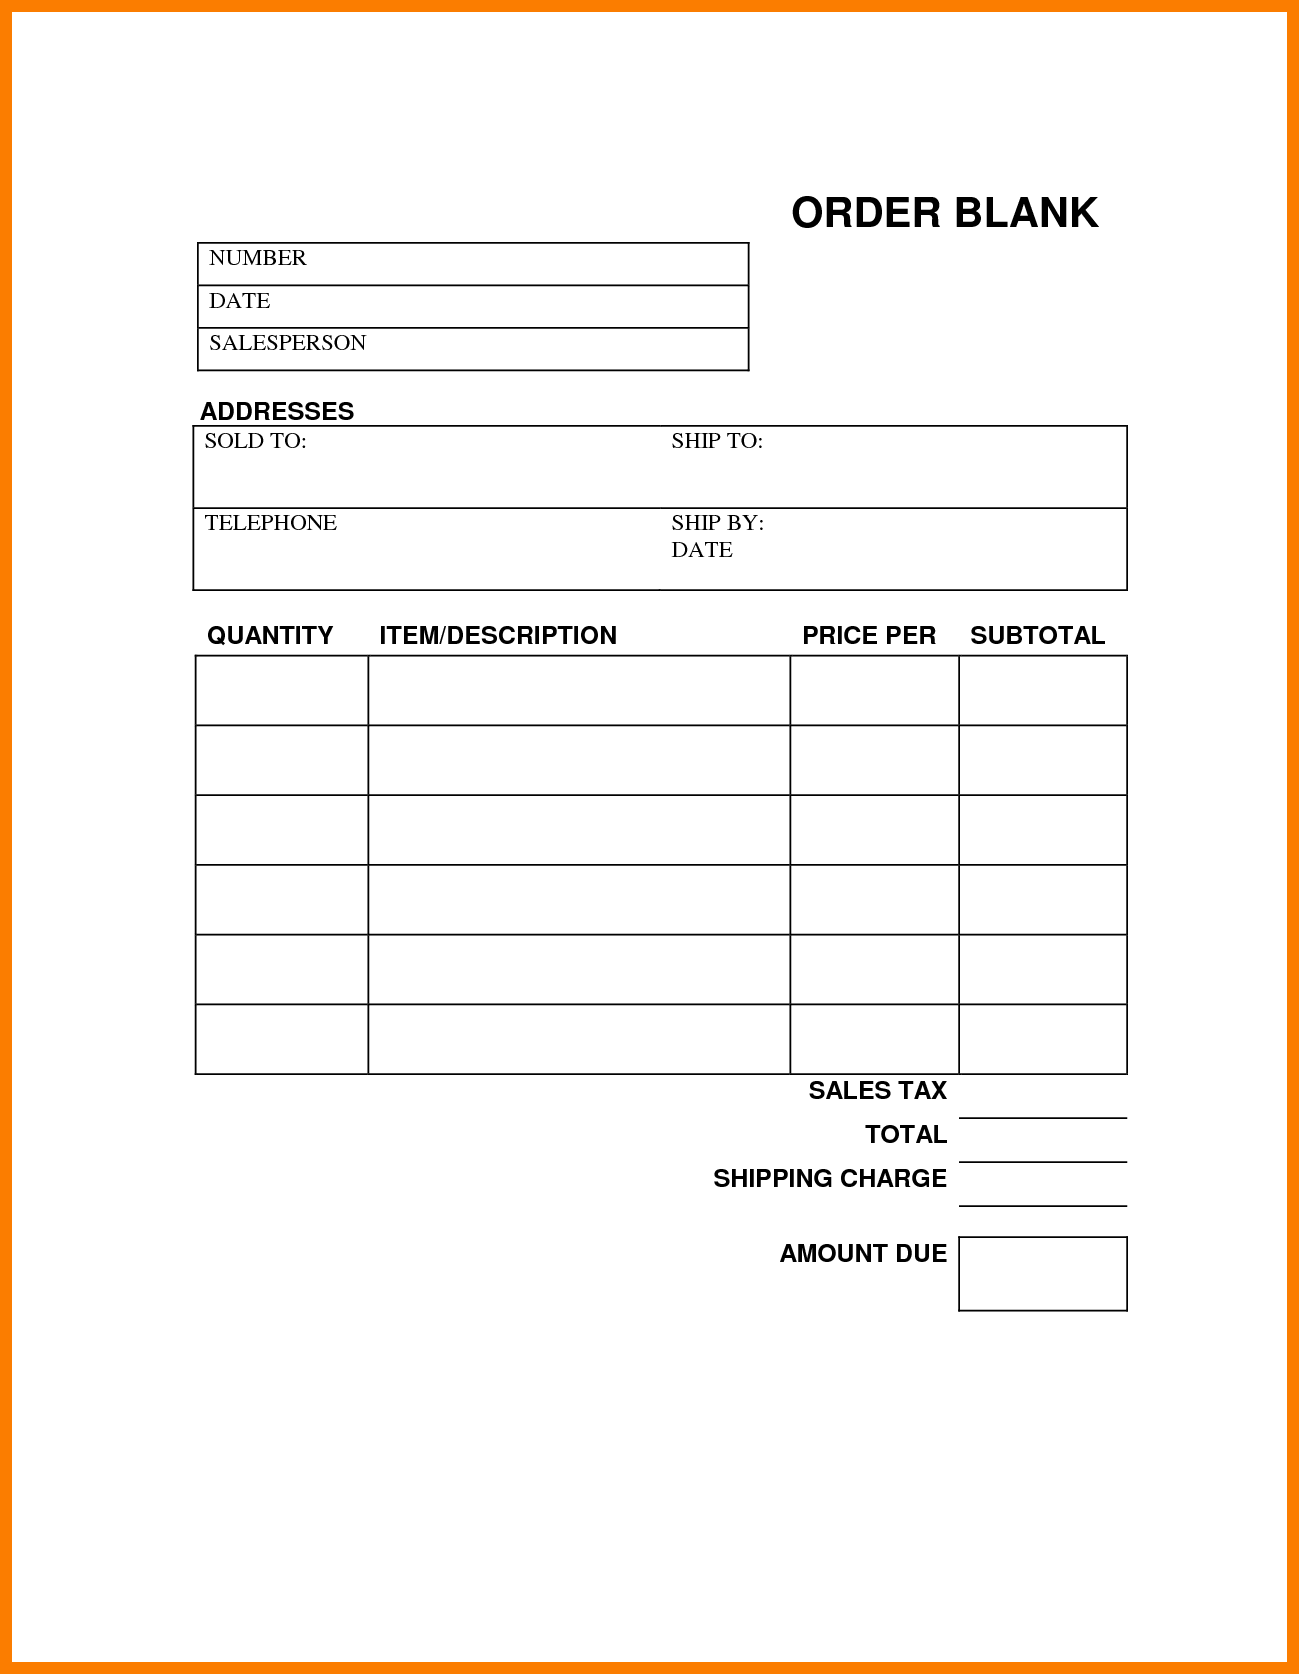 blank order form printable   Kleo.beachfix.co